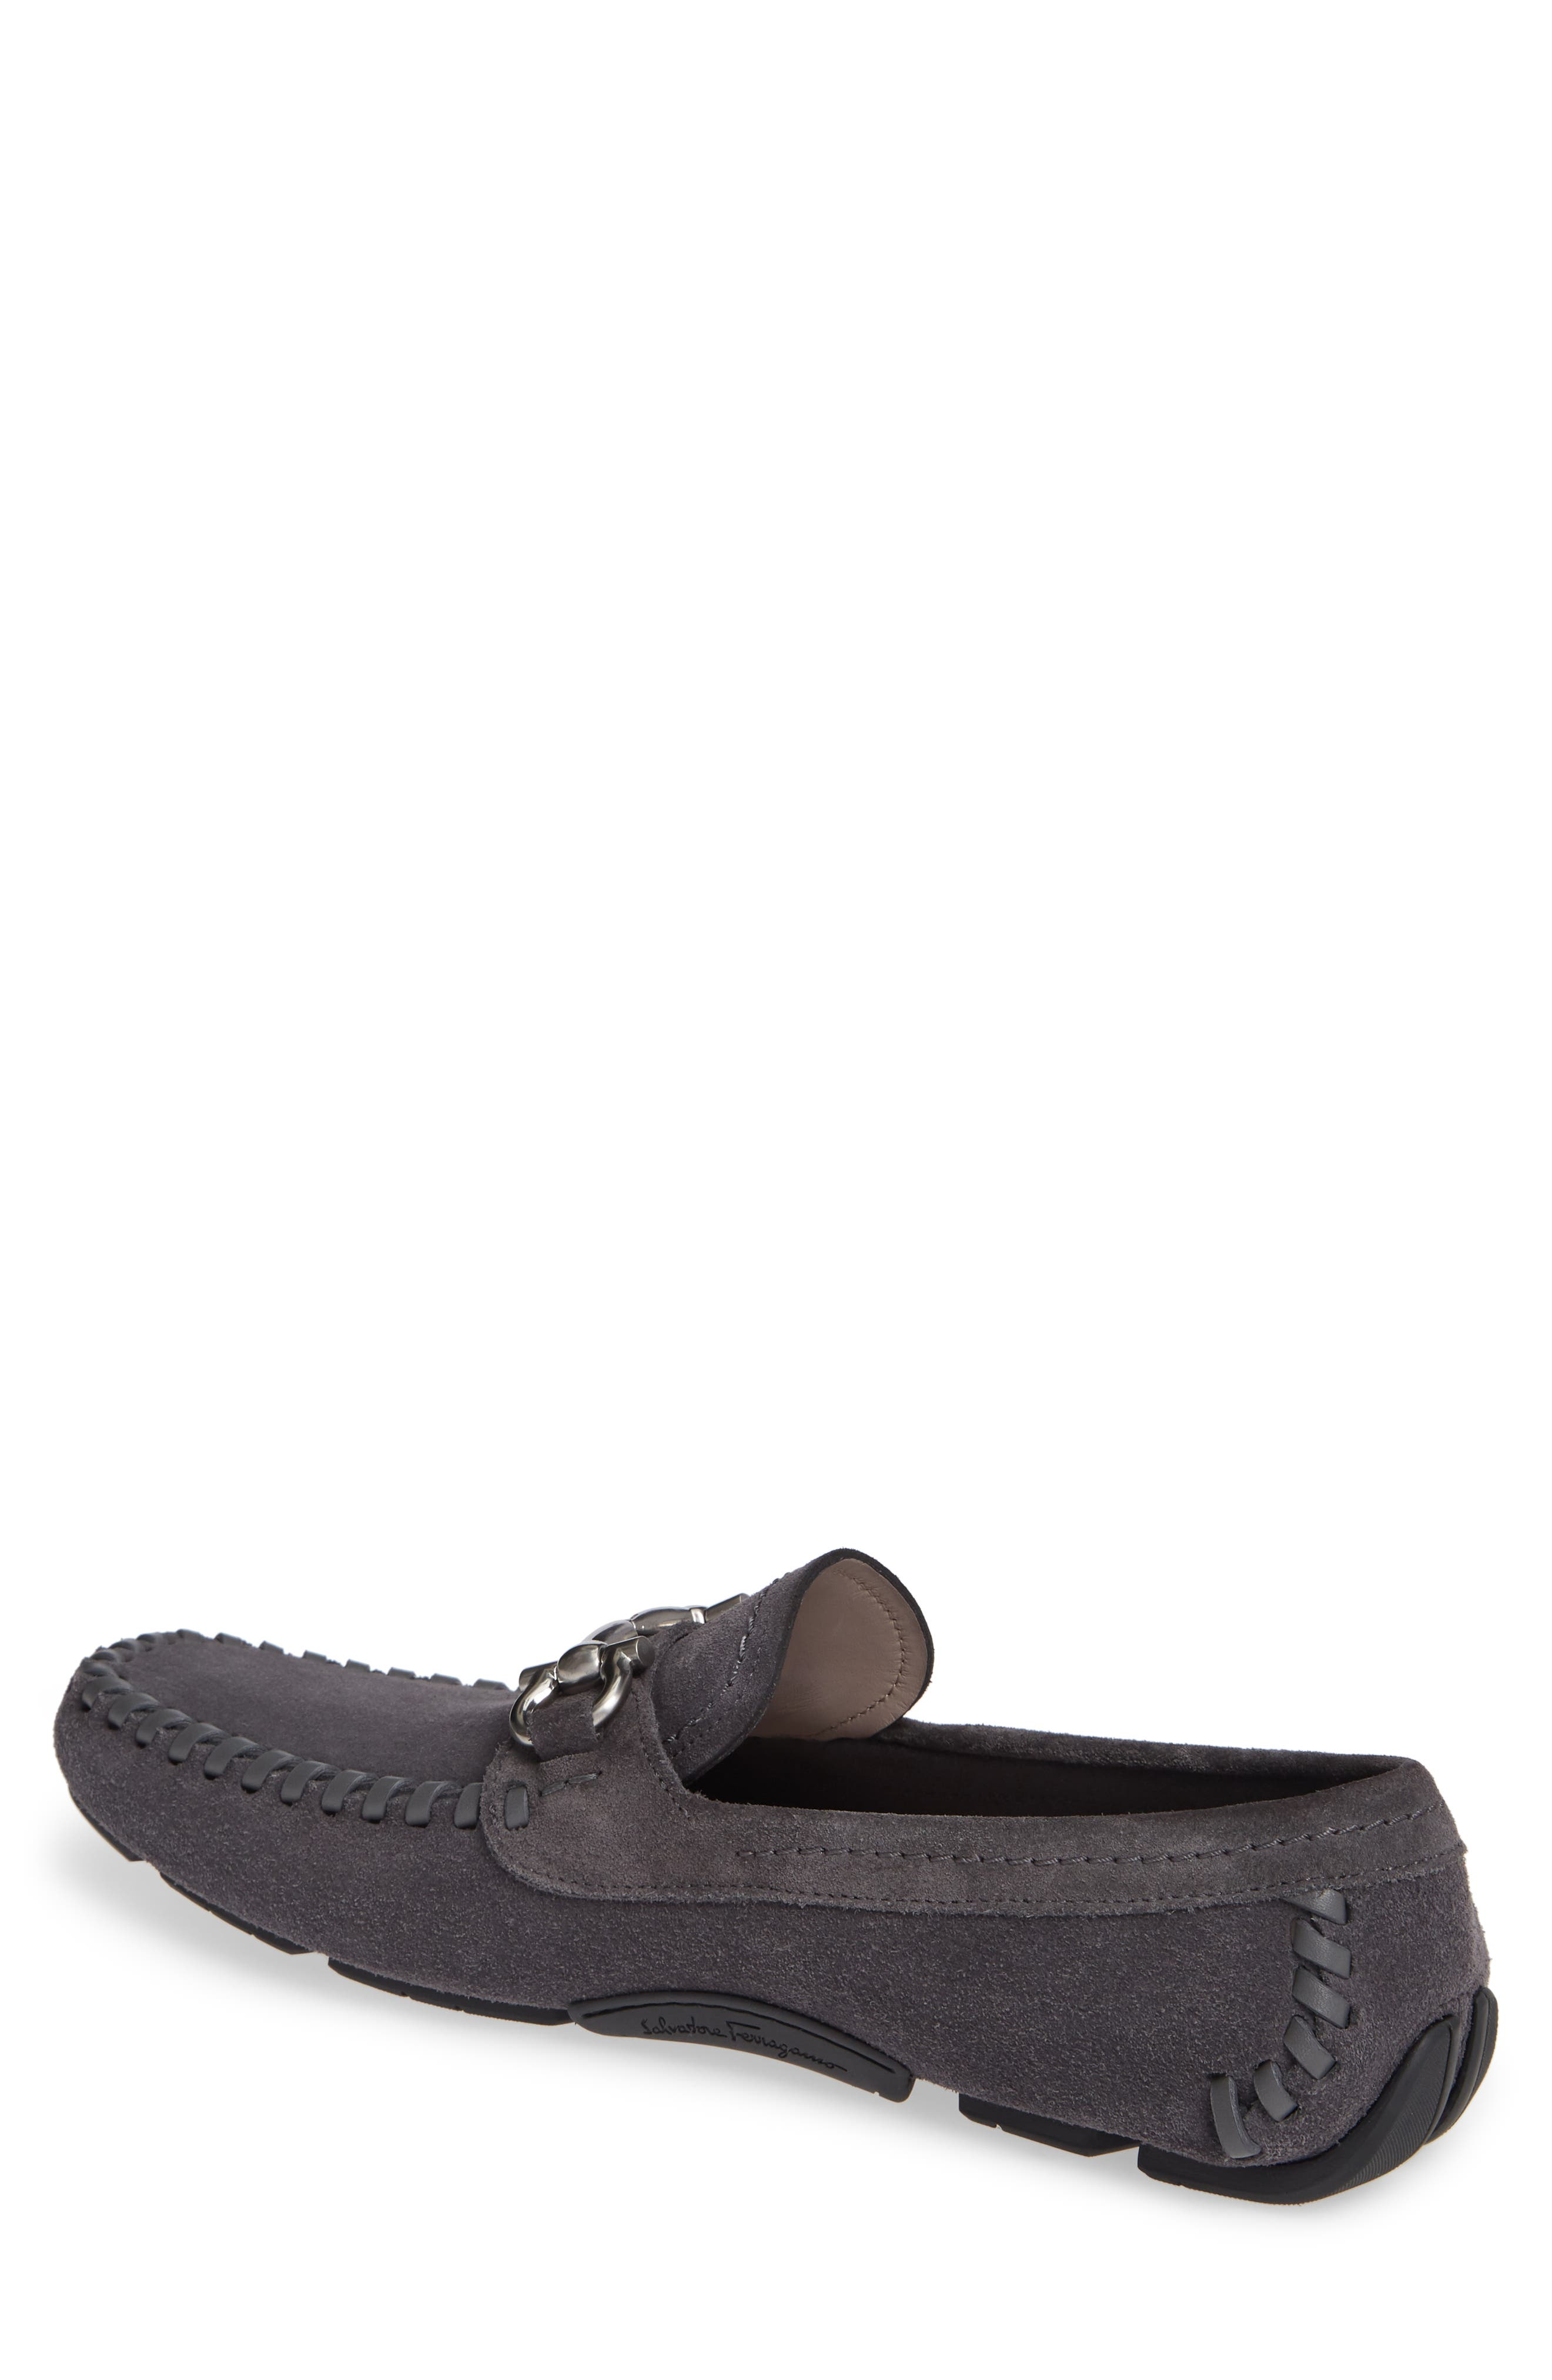 SALVATORE FERRAGAMO, Parigi Bit Driving Moccasin, Alternate thumbnail 2, color, ASFALTO NERO